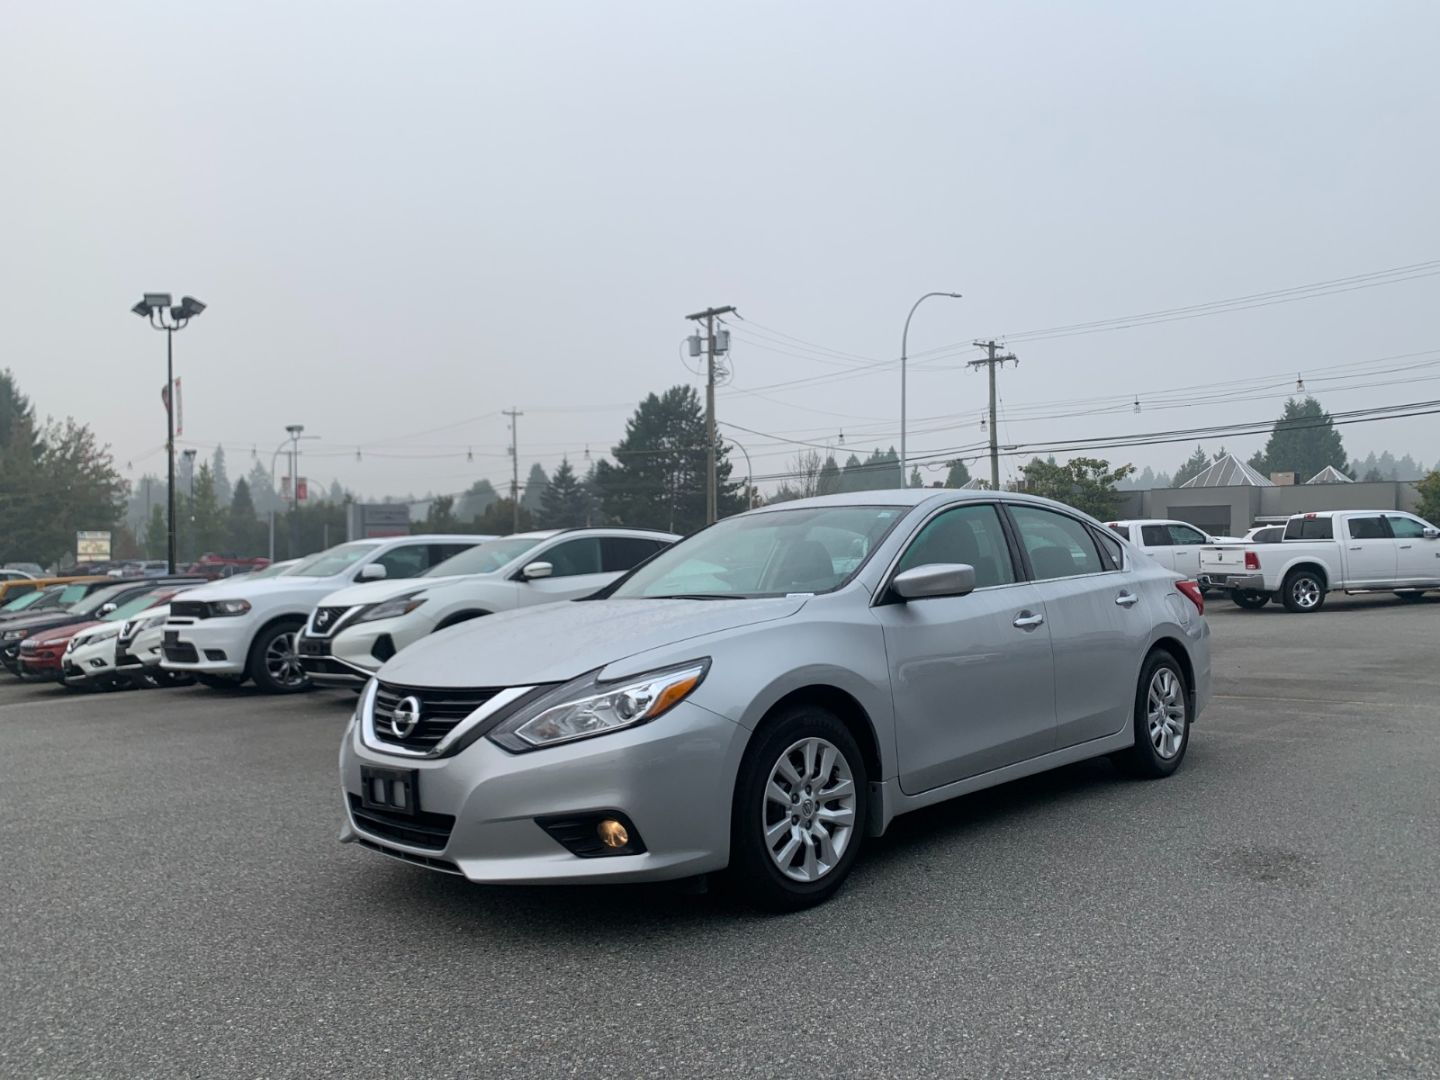 2017 Nissan Altima 2.5 for sale in Surrey, British Columbia